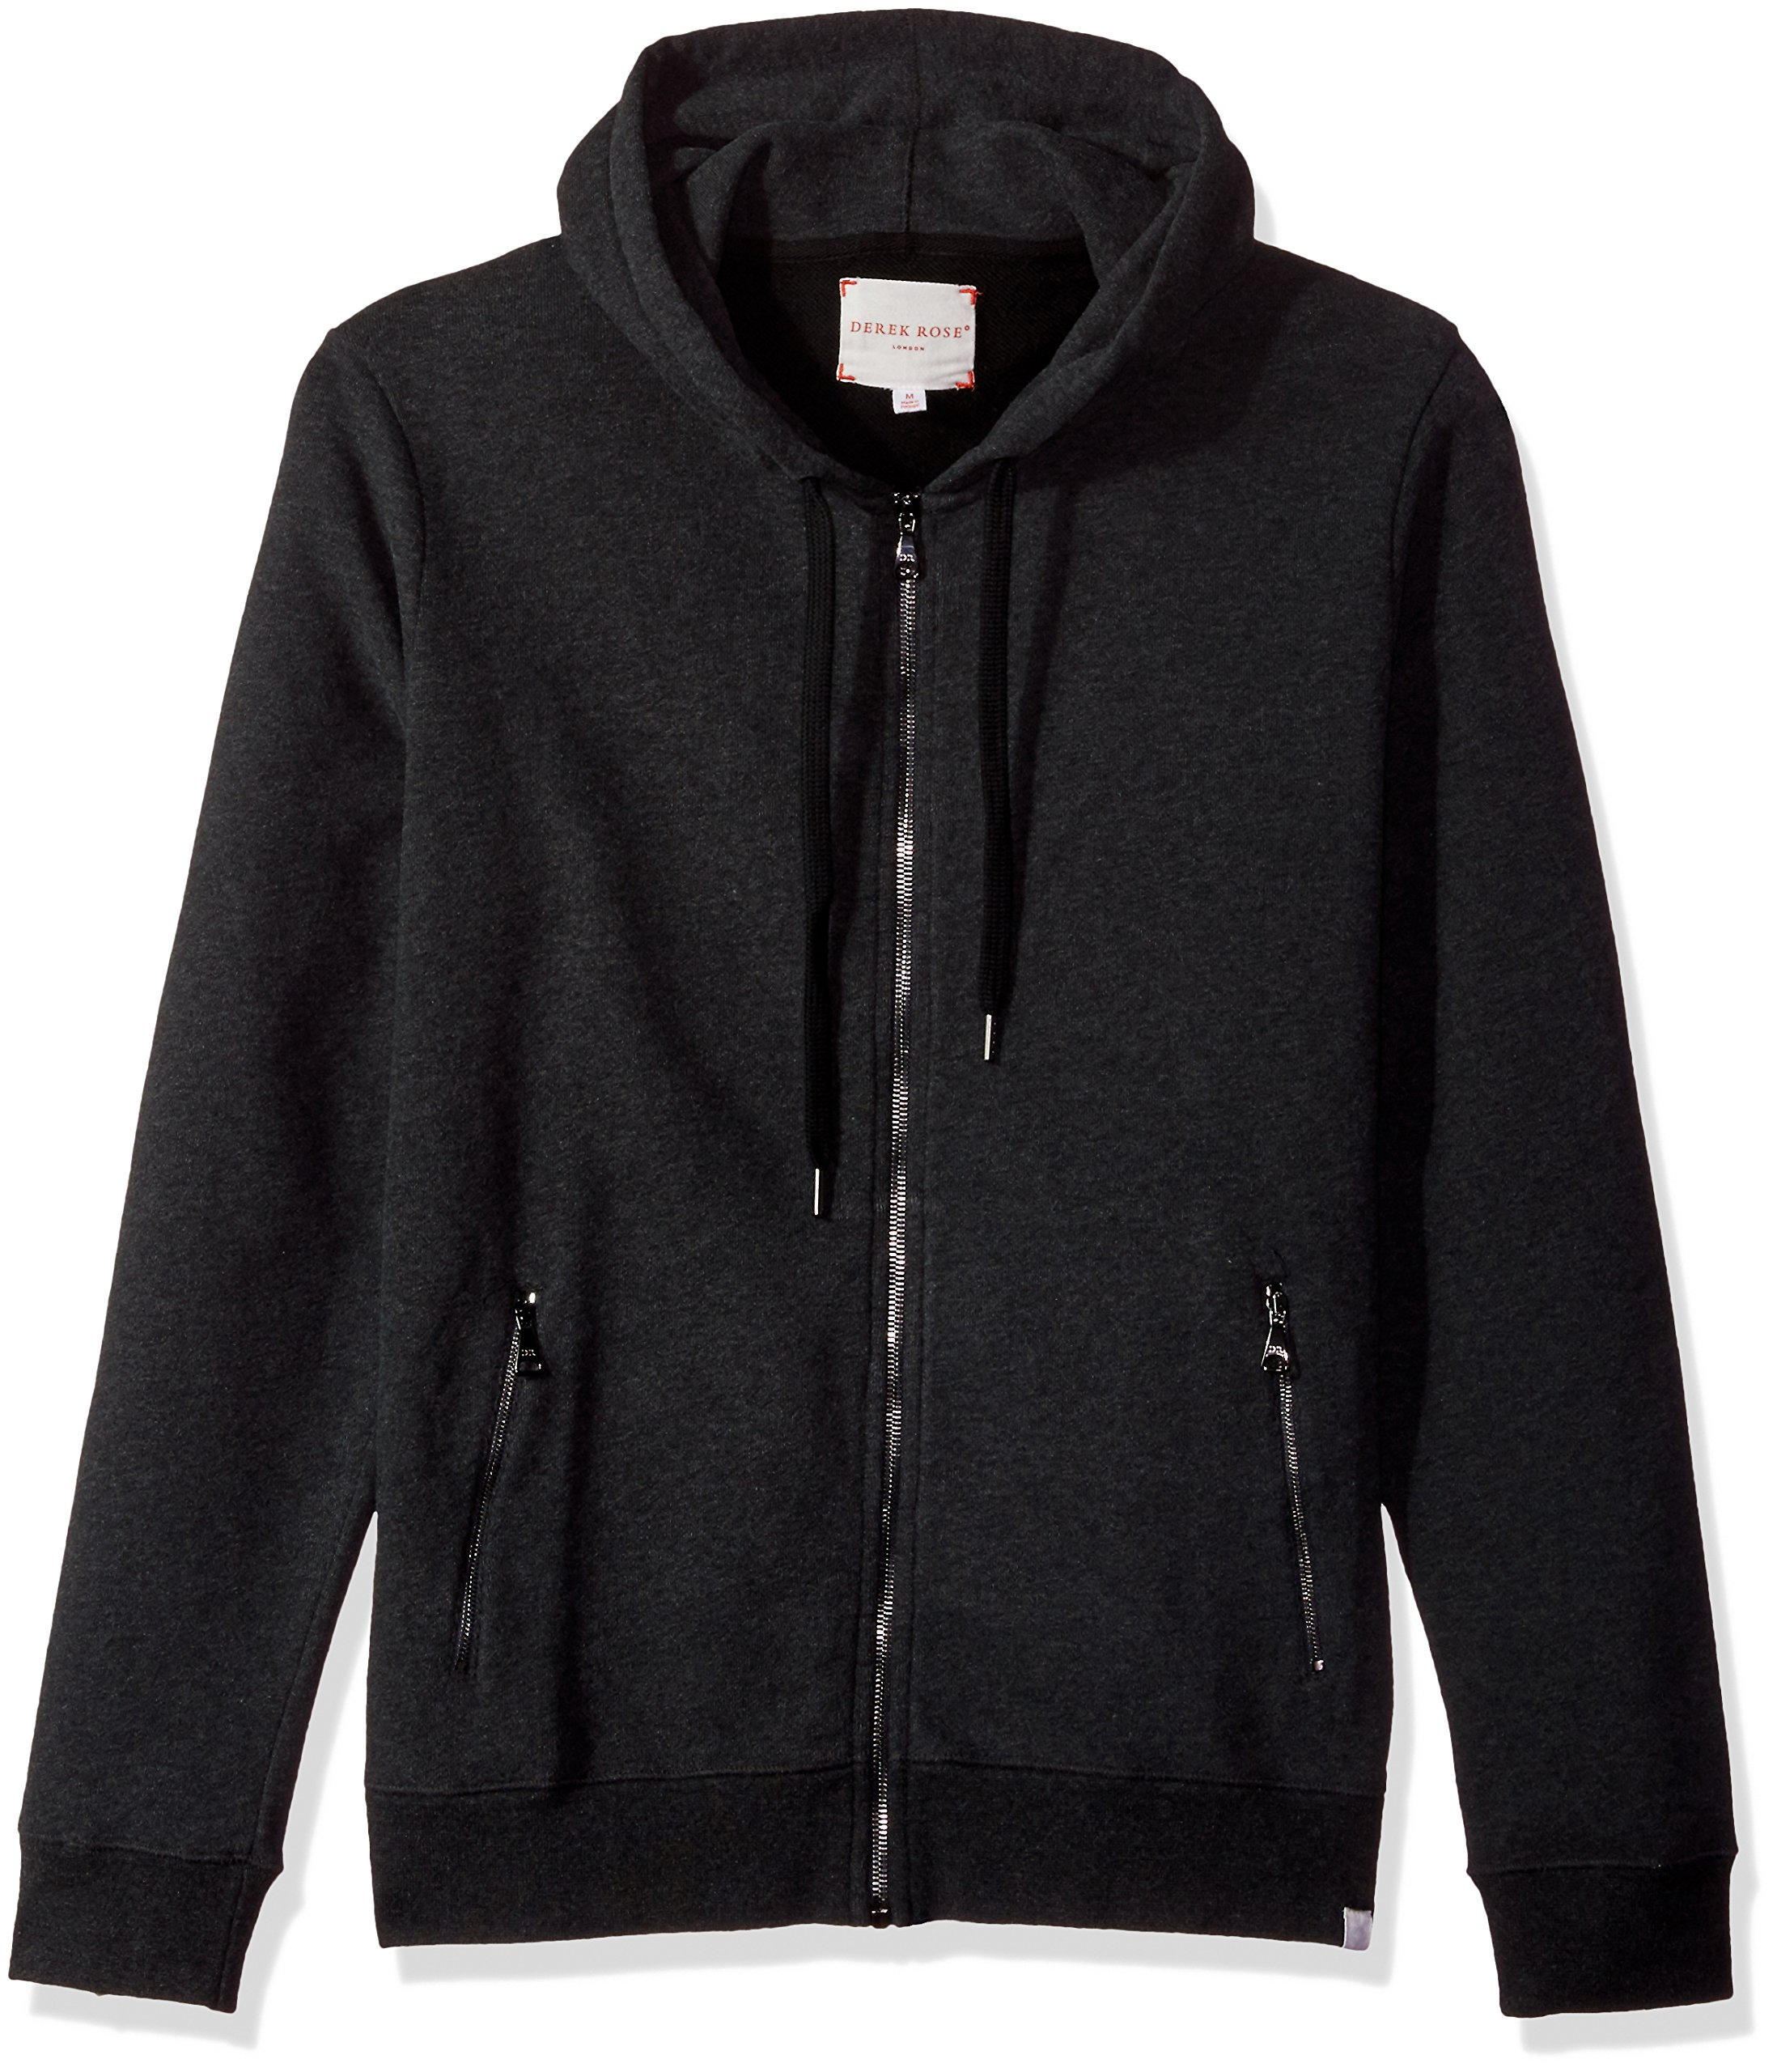 Derek Rose Men's Devon 1 Cotton Loopback Hoodie, Charcoal, L